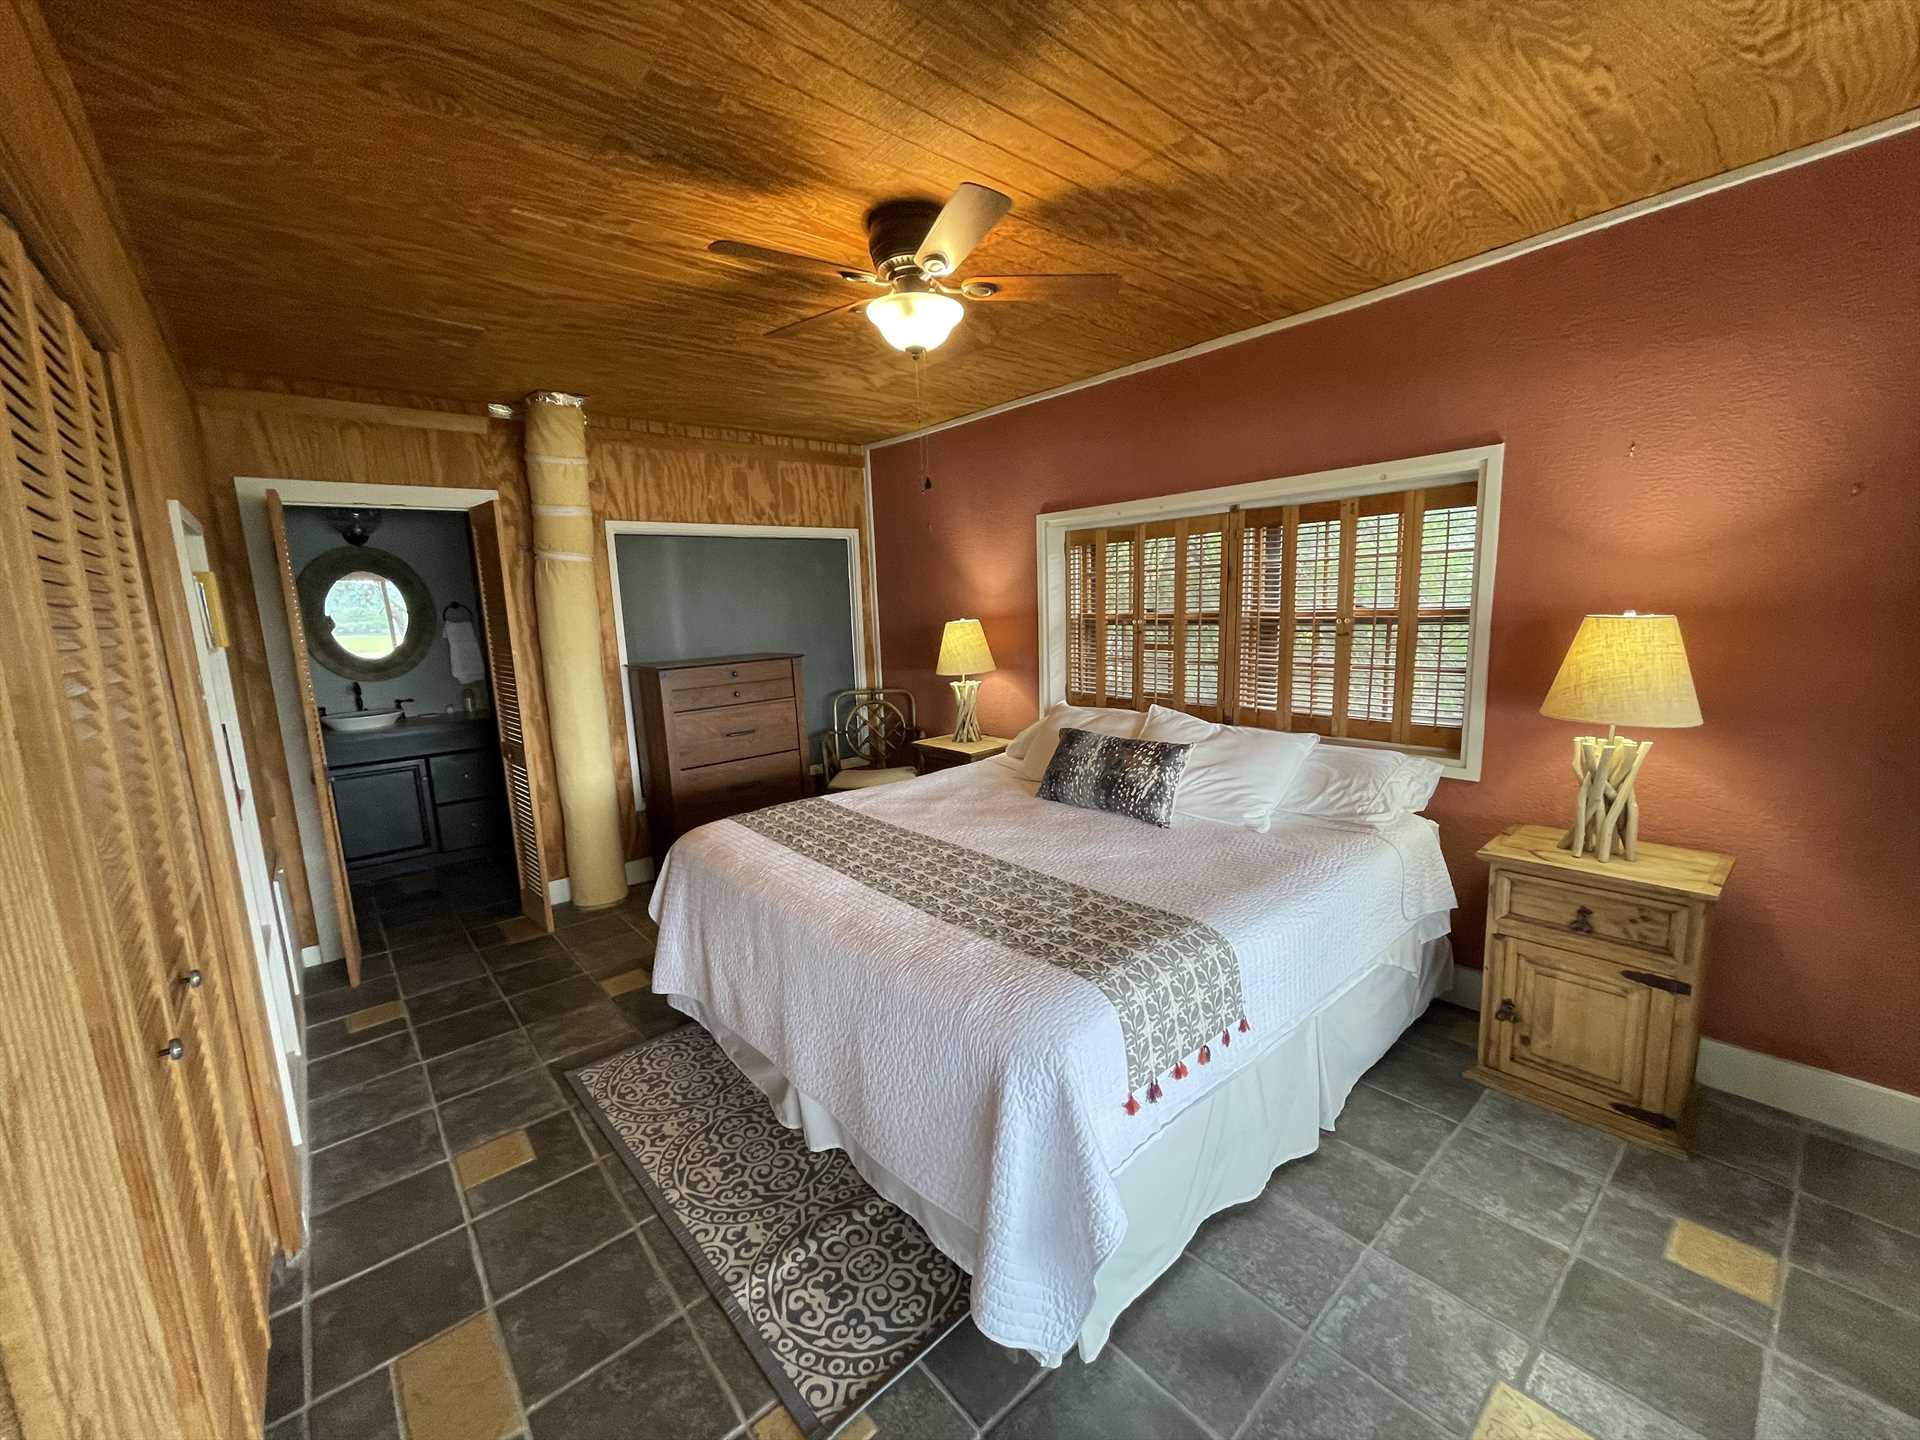 The spacious and stylish master suite features a roomy and comfortable king-sized bed. All bed and bath linens are provided, as well.